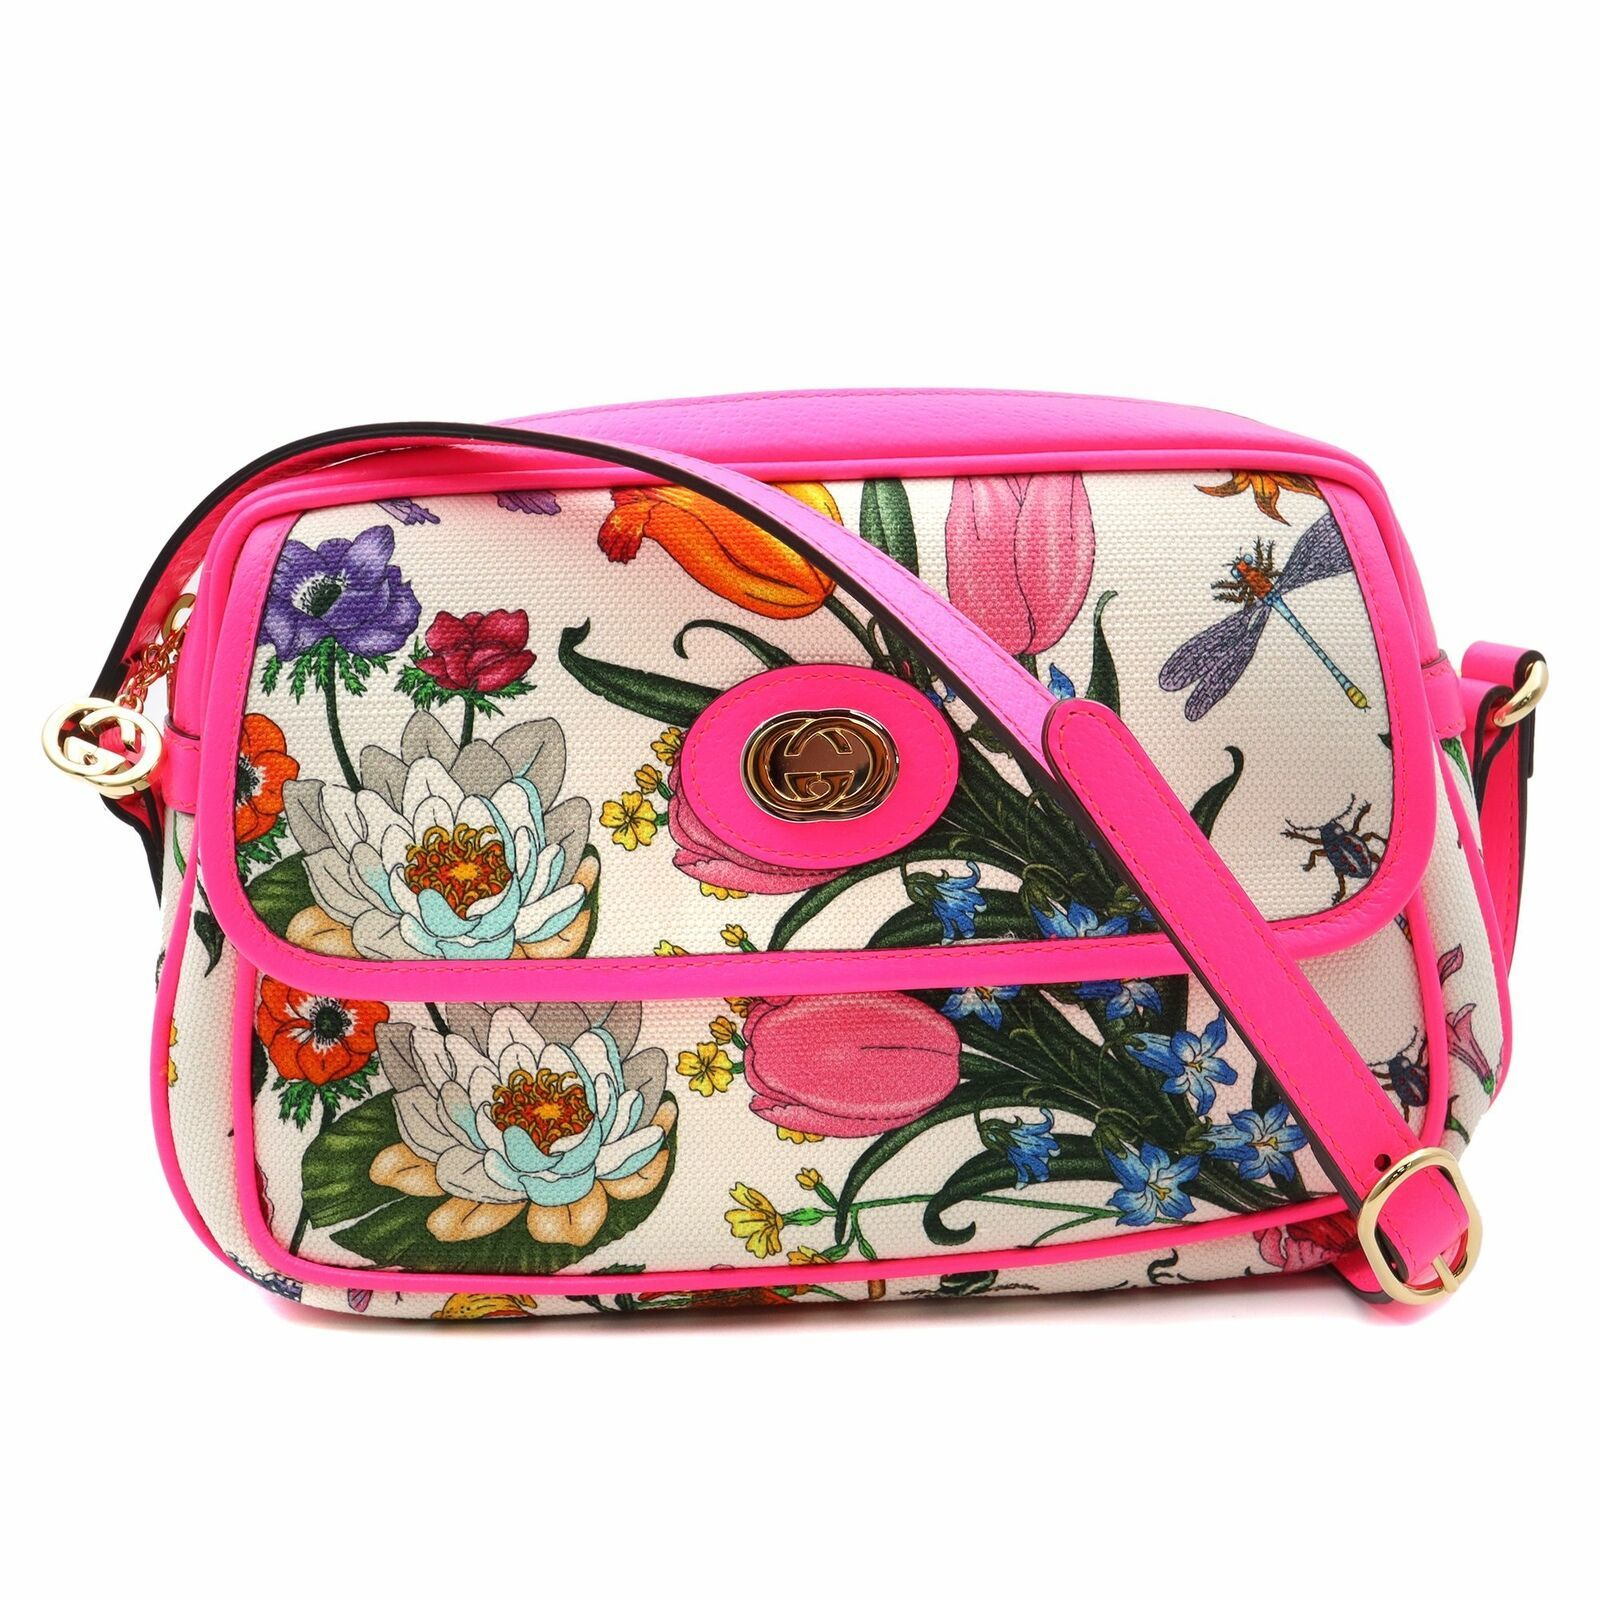 Primary image for Gucci Canvas Flora Floral White Fuchsia Fluo Small Cross-body Bag